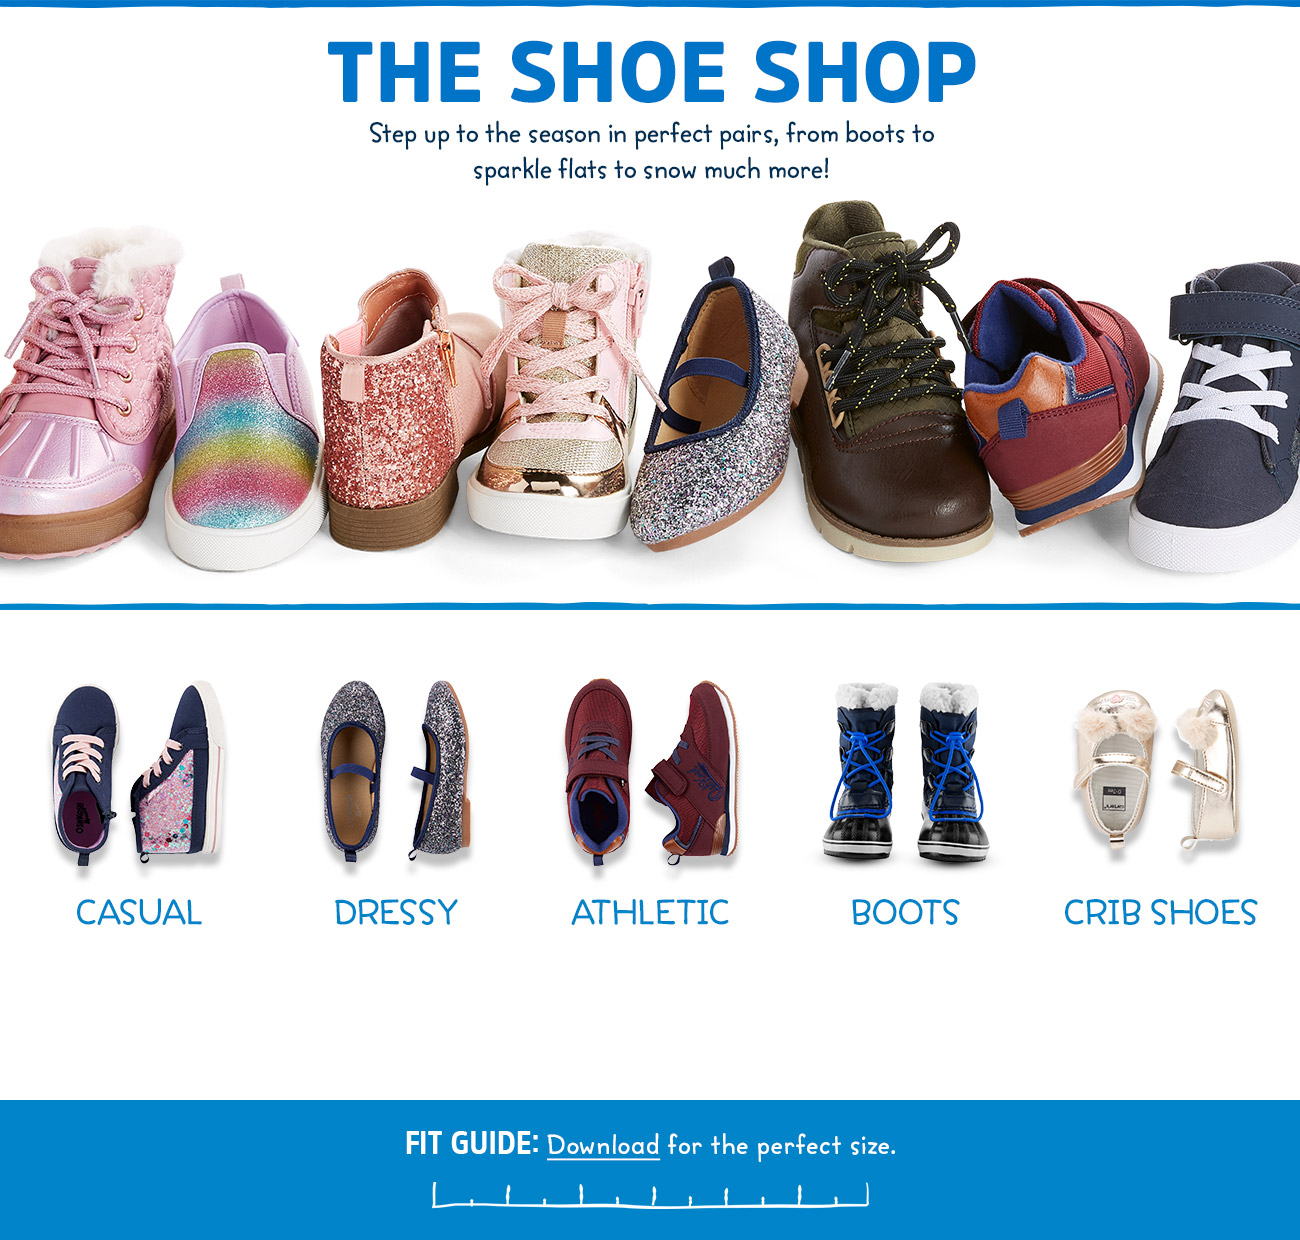 THE SHOE SHOP | step up to the season in perfect pairs, from boots to sparkle flats to snow much more!